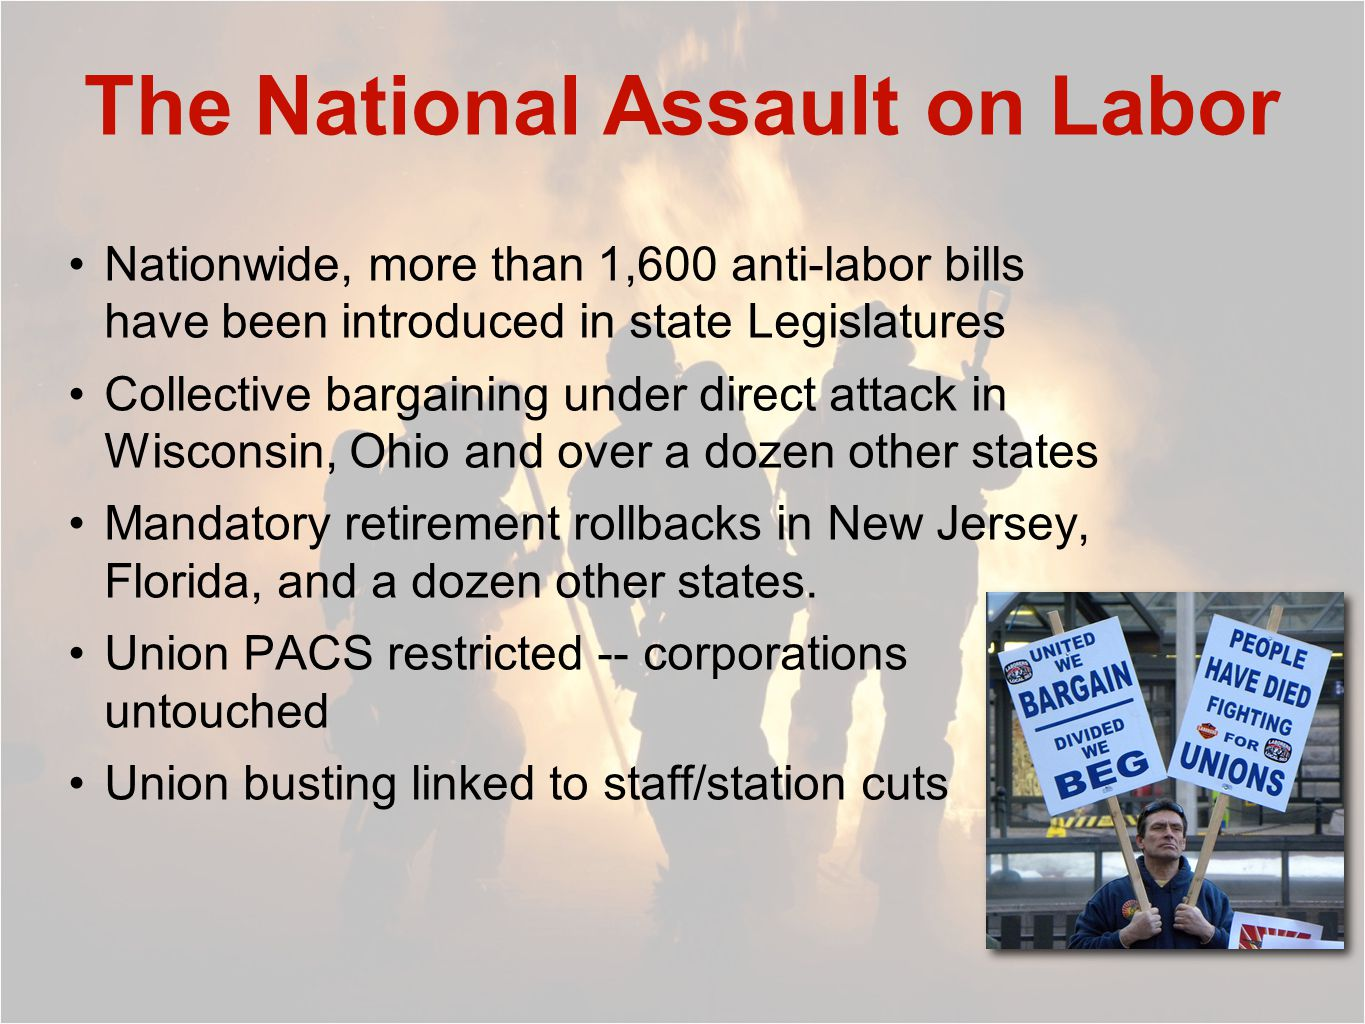 The National Assault on Labor Nationwide, more than 1,600 anti-labor bills have been introduced in state Legislatures Collective bargaining under direct attack in Wisconsin, Ohio and over a dozen other states Mandatory retirement rollbacks in New Jersey, Florida, and a dozen other states.